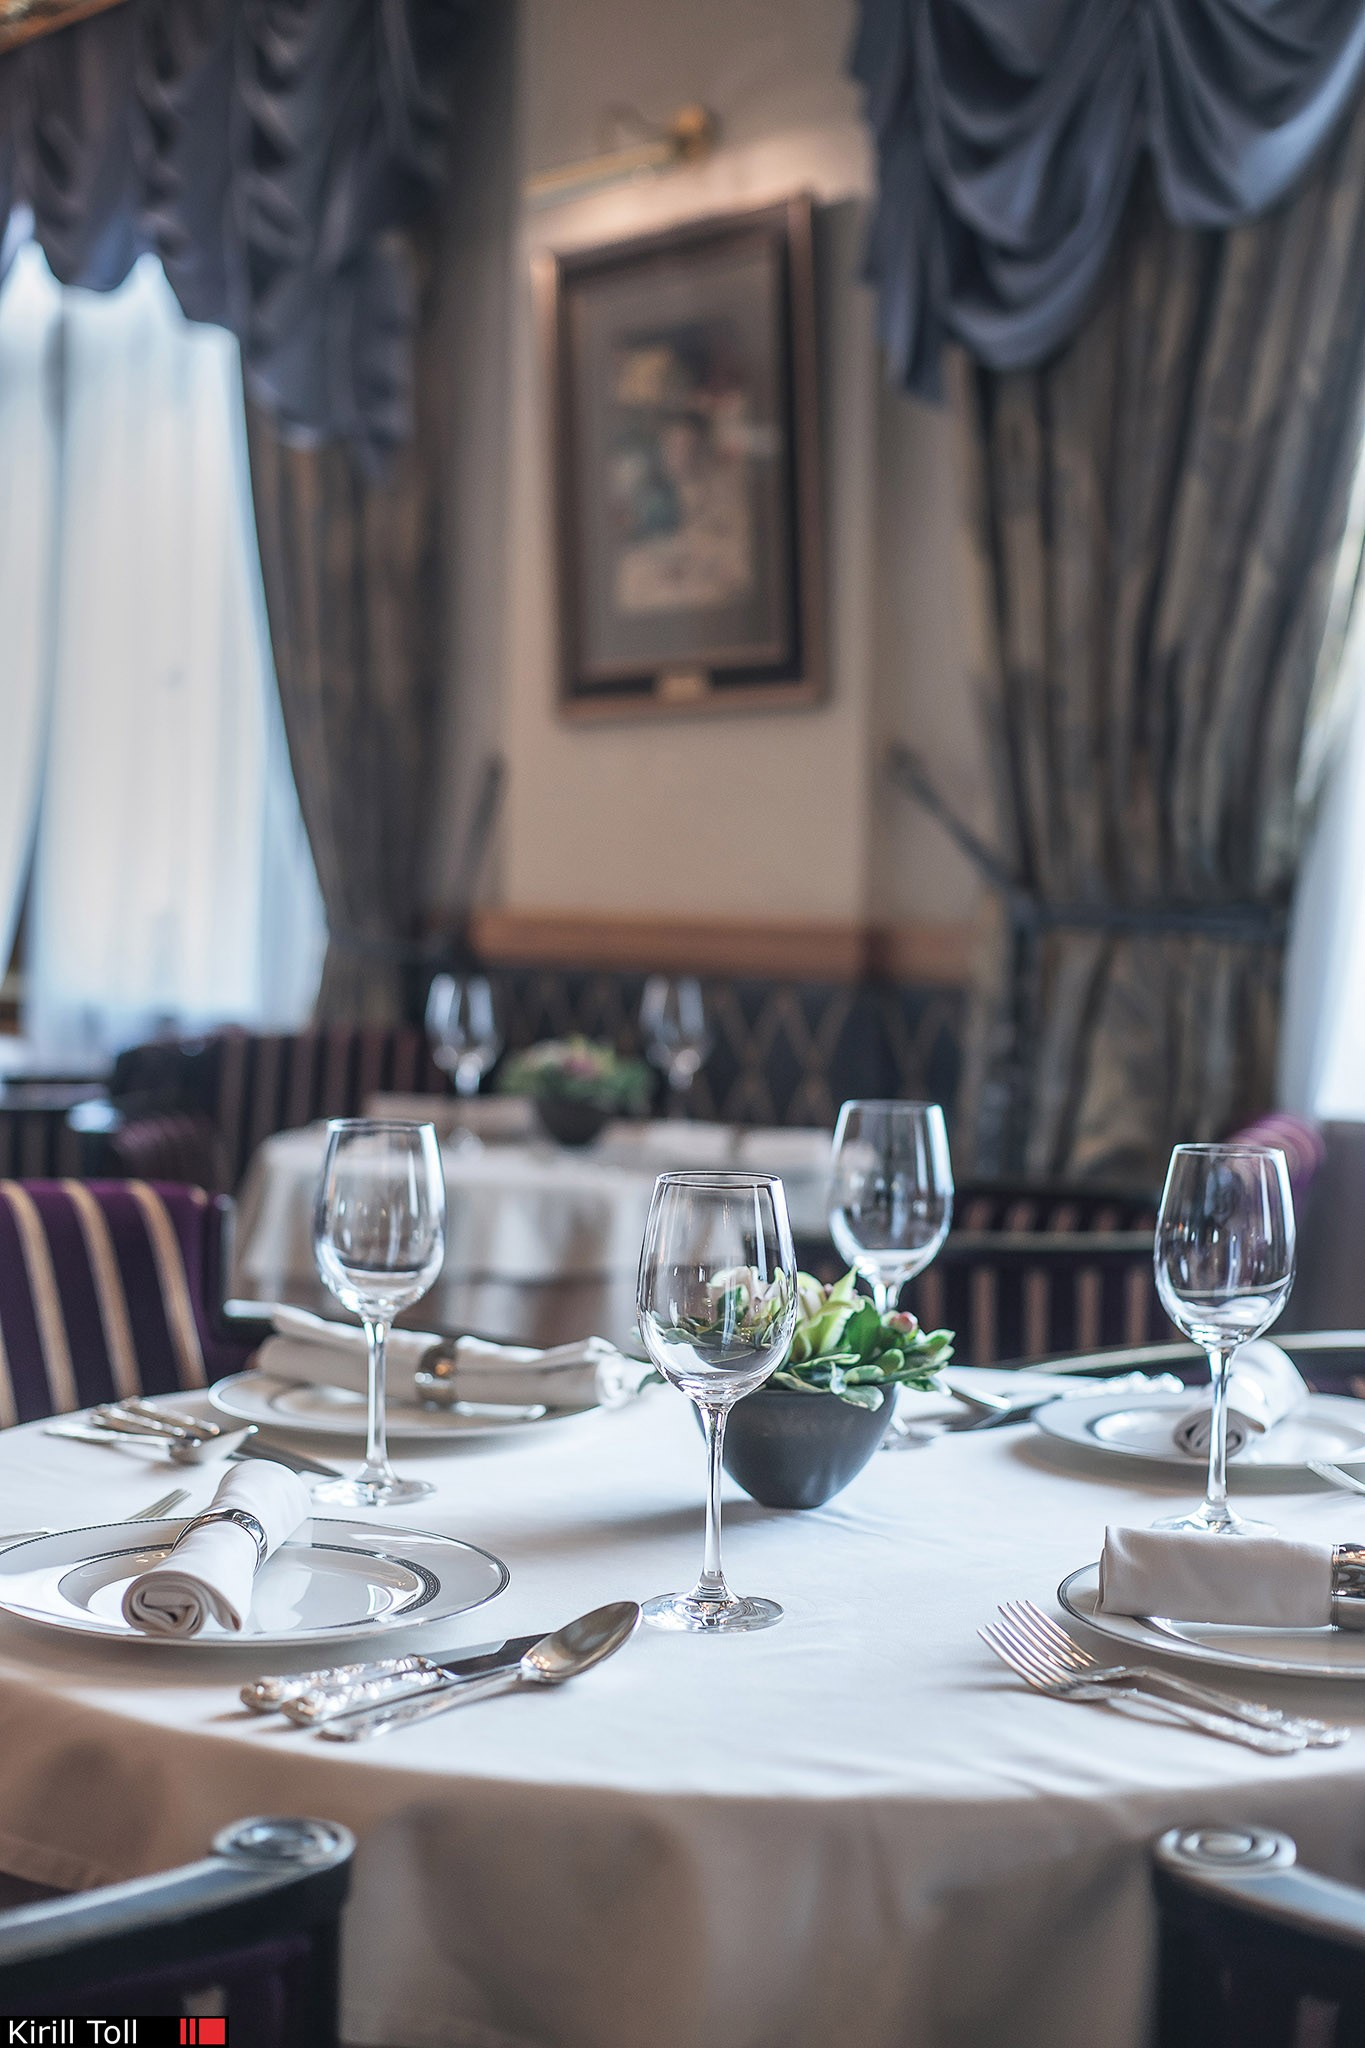 Interior photography for advertising. A restaurant. Photographer Toll